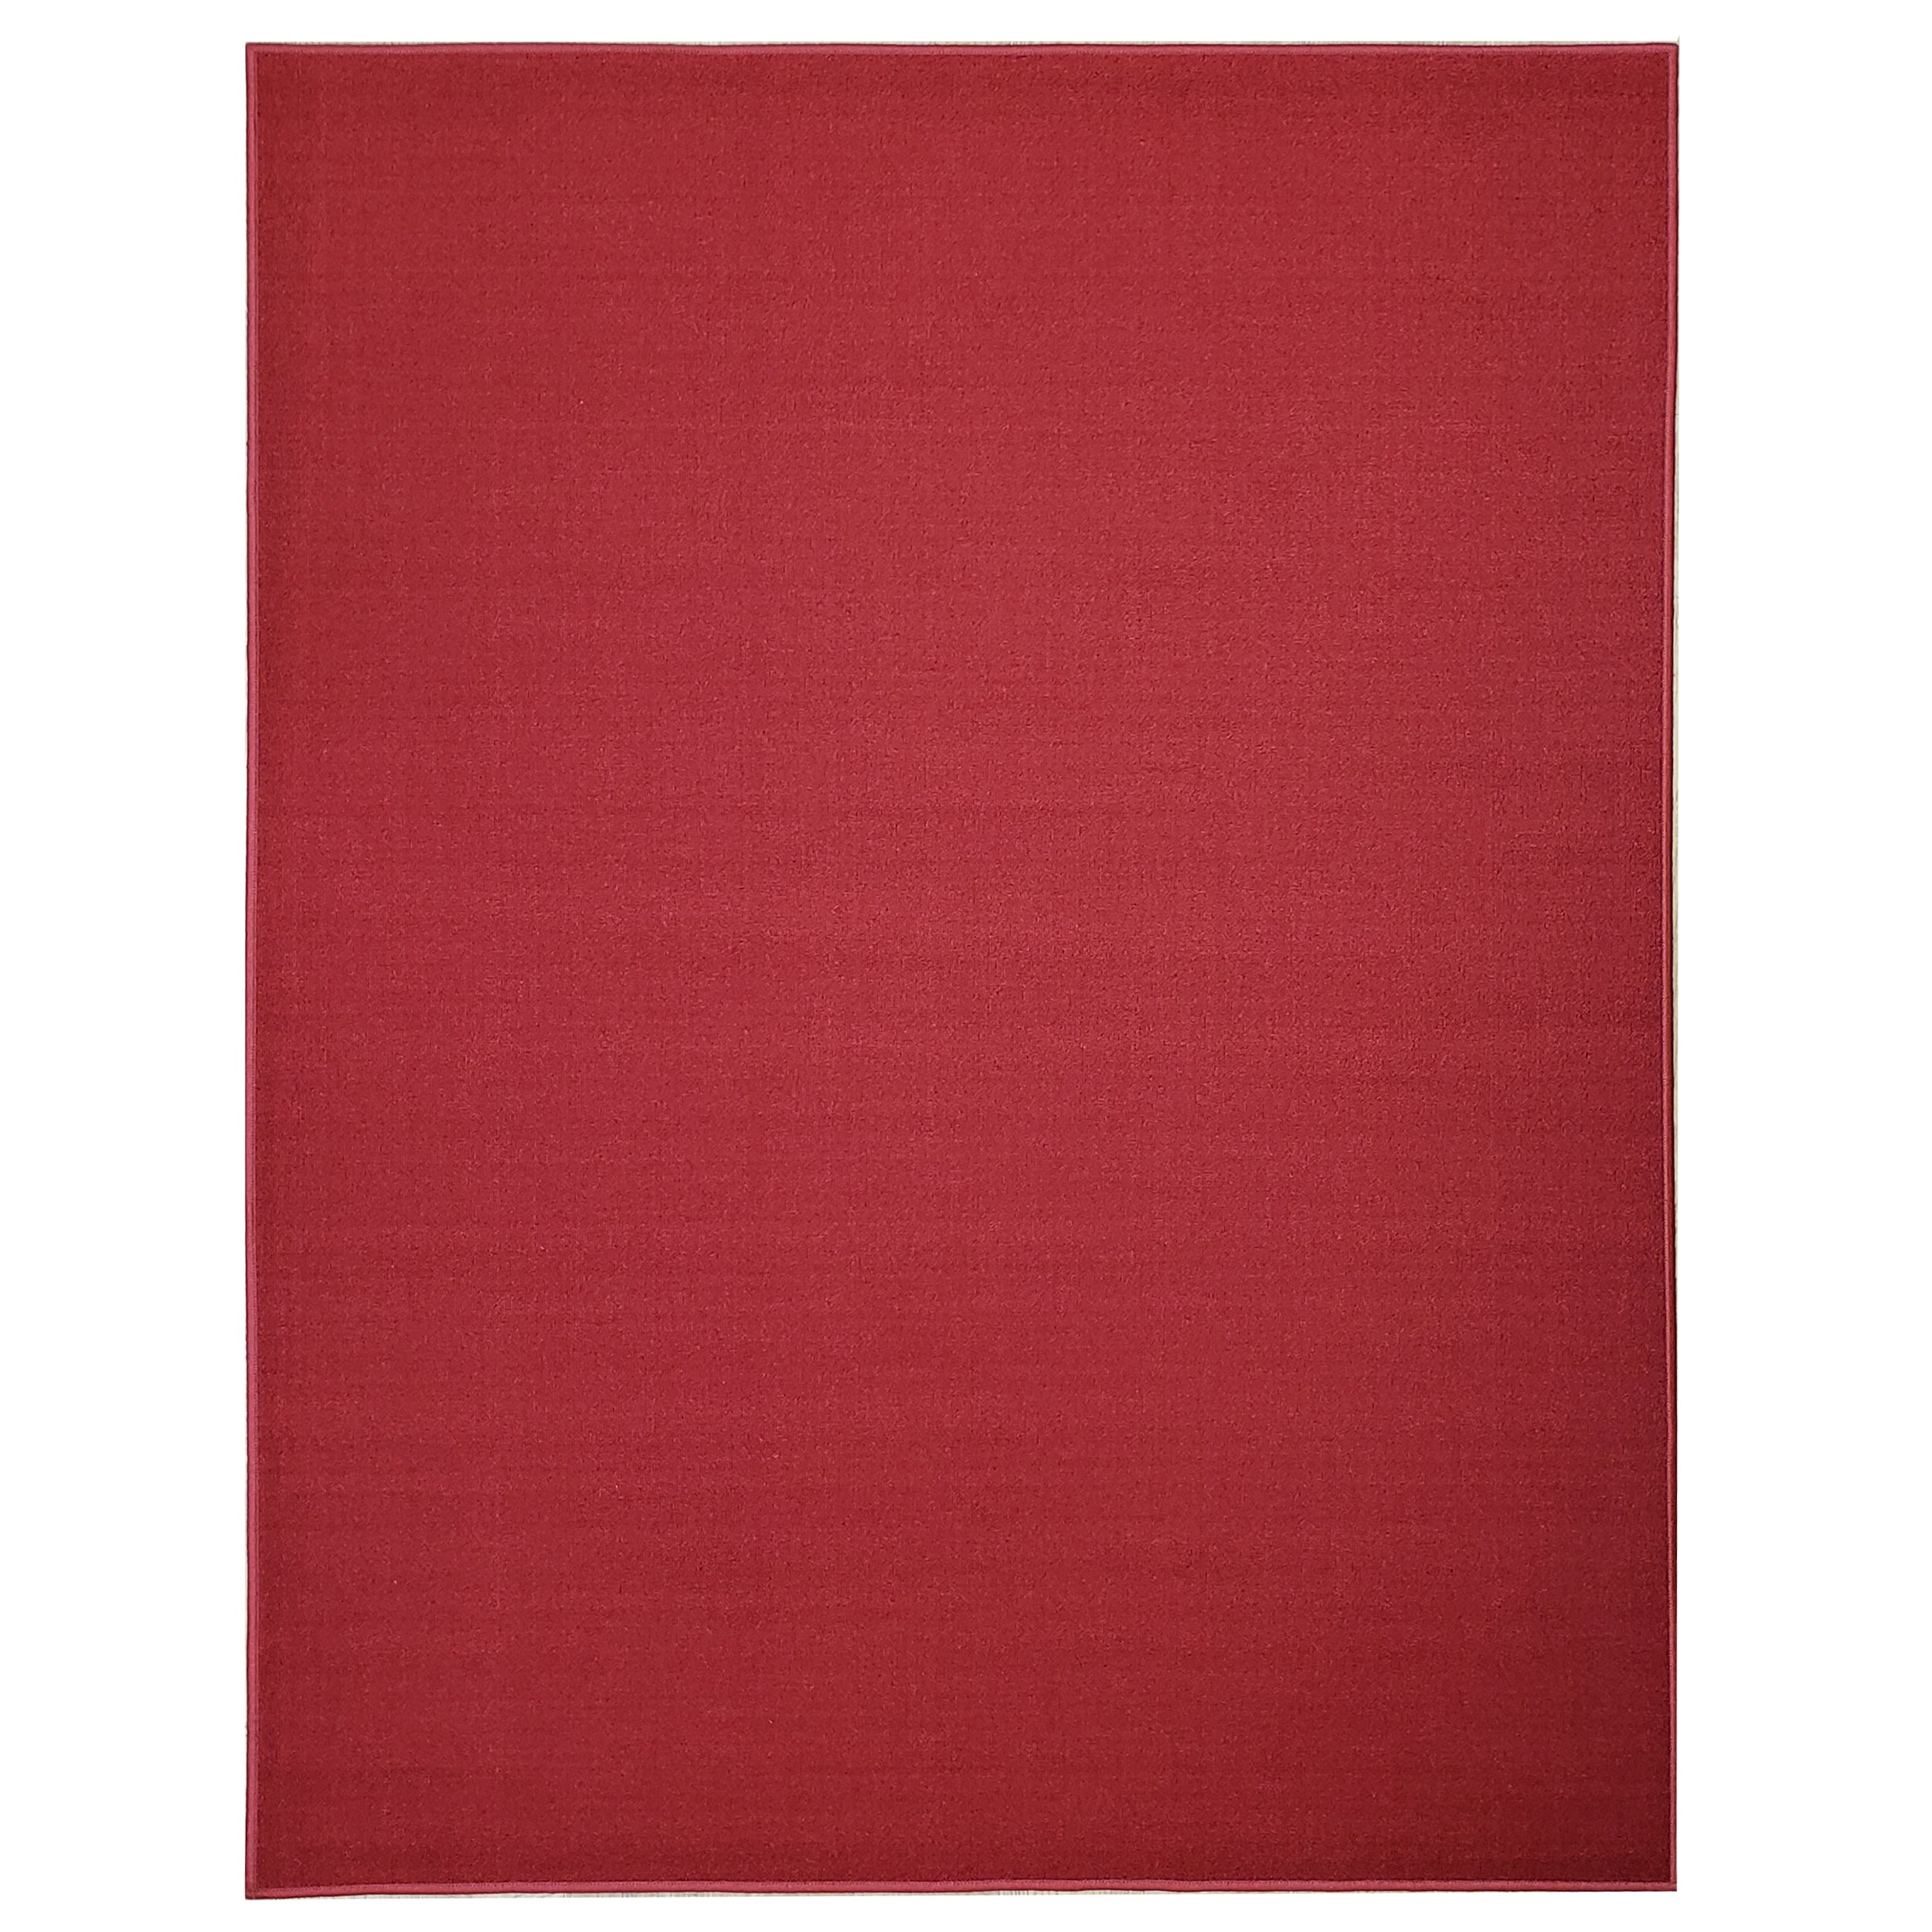 Belgio Rubber Backed Non Slip Rugs and Runners Solid Red